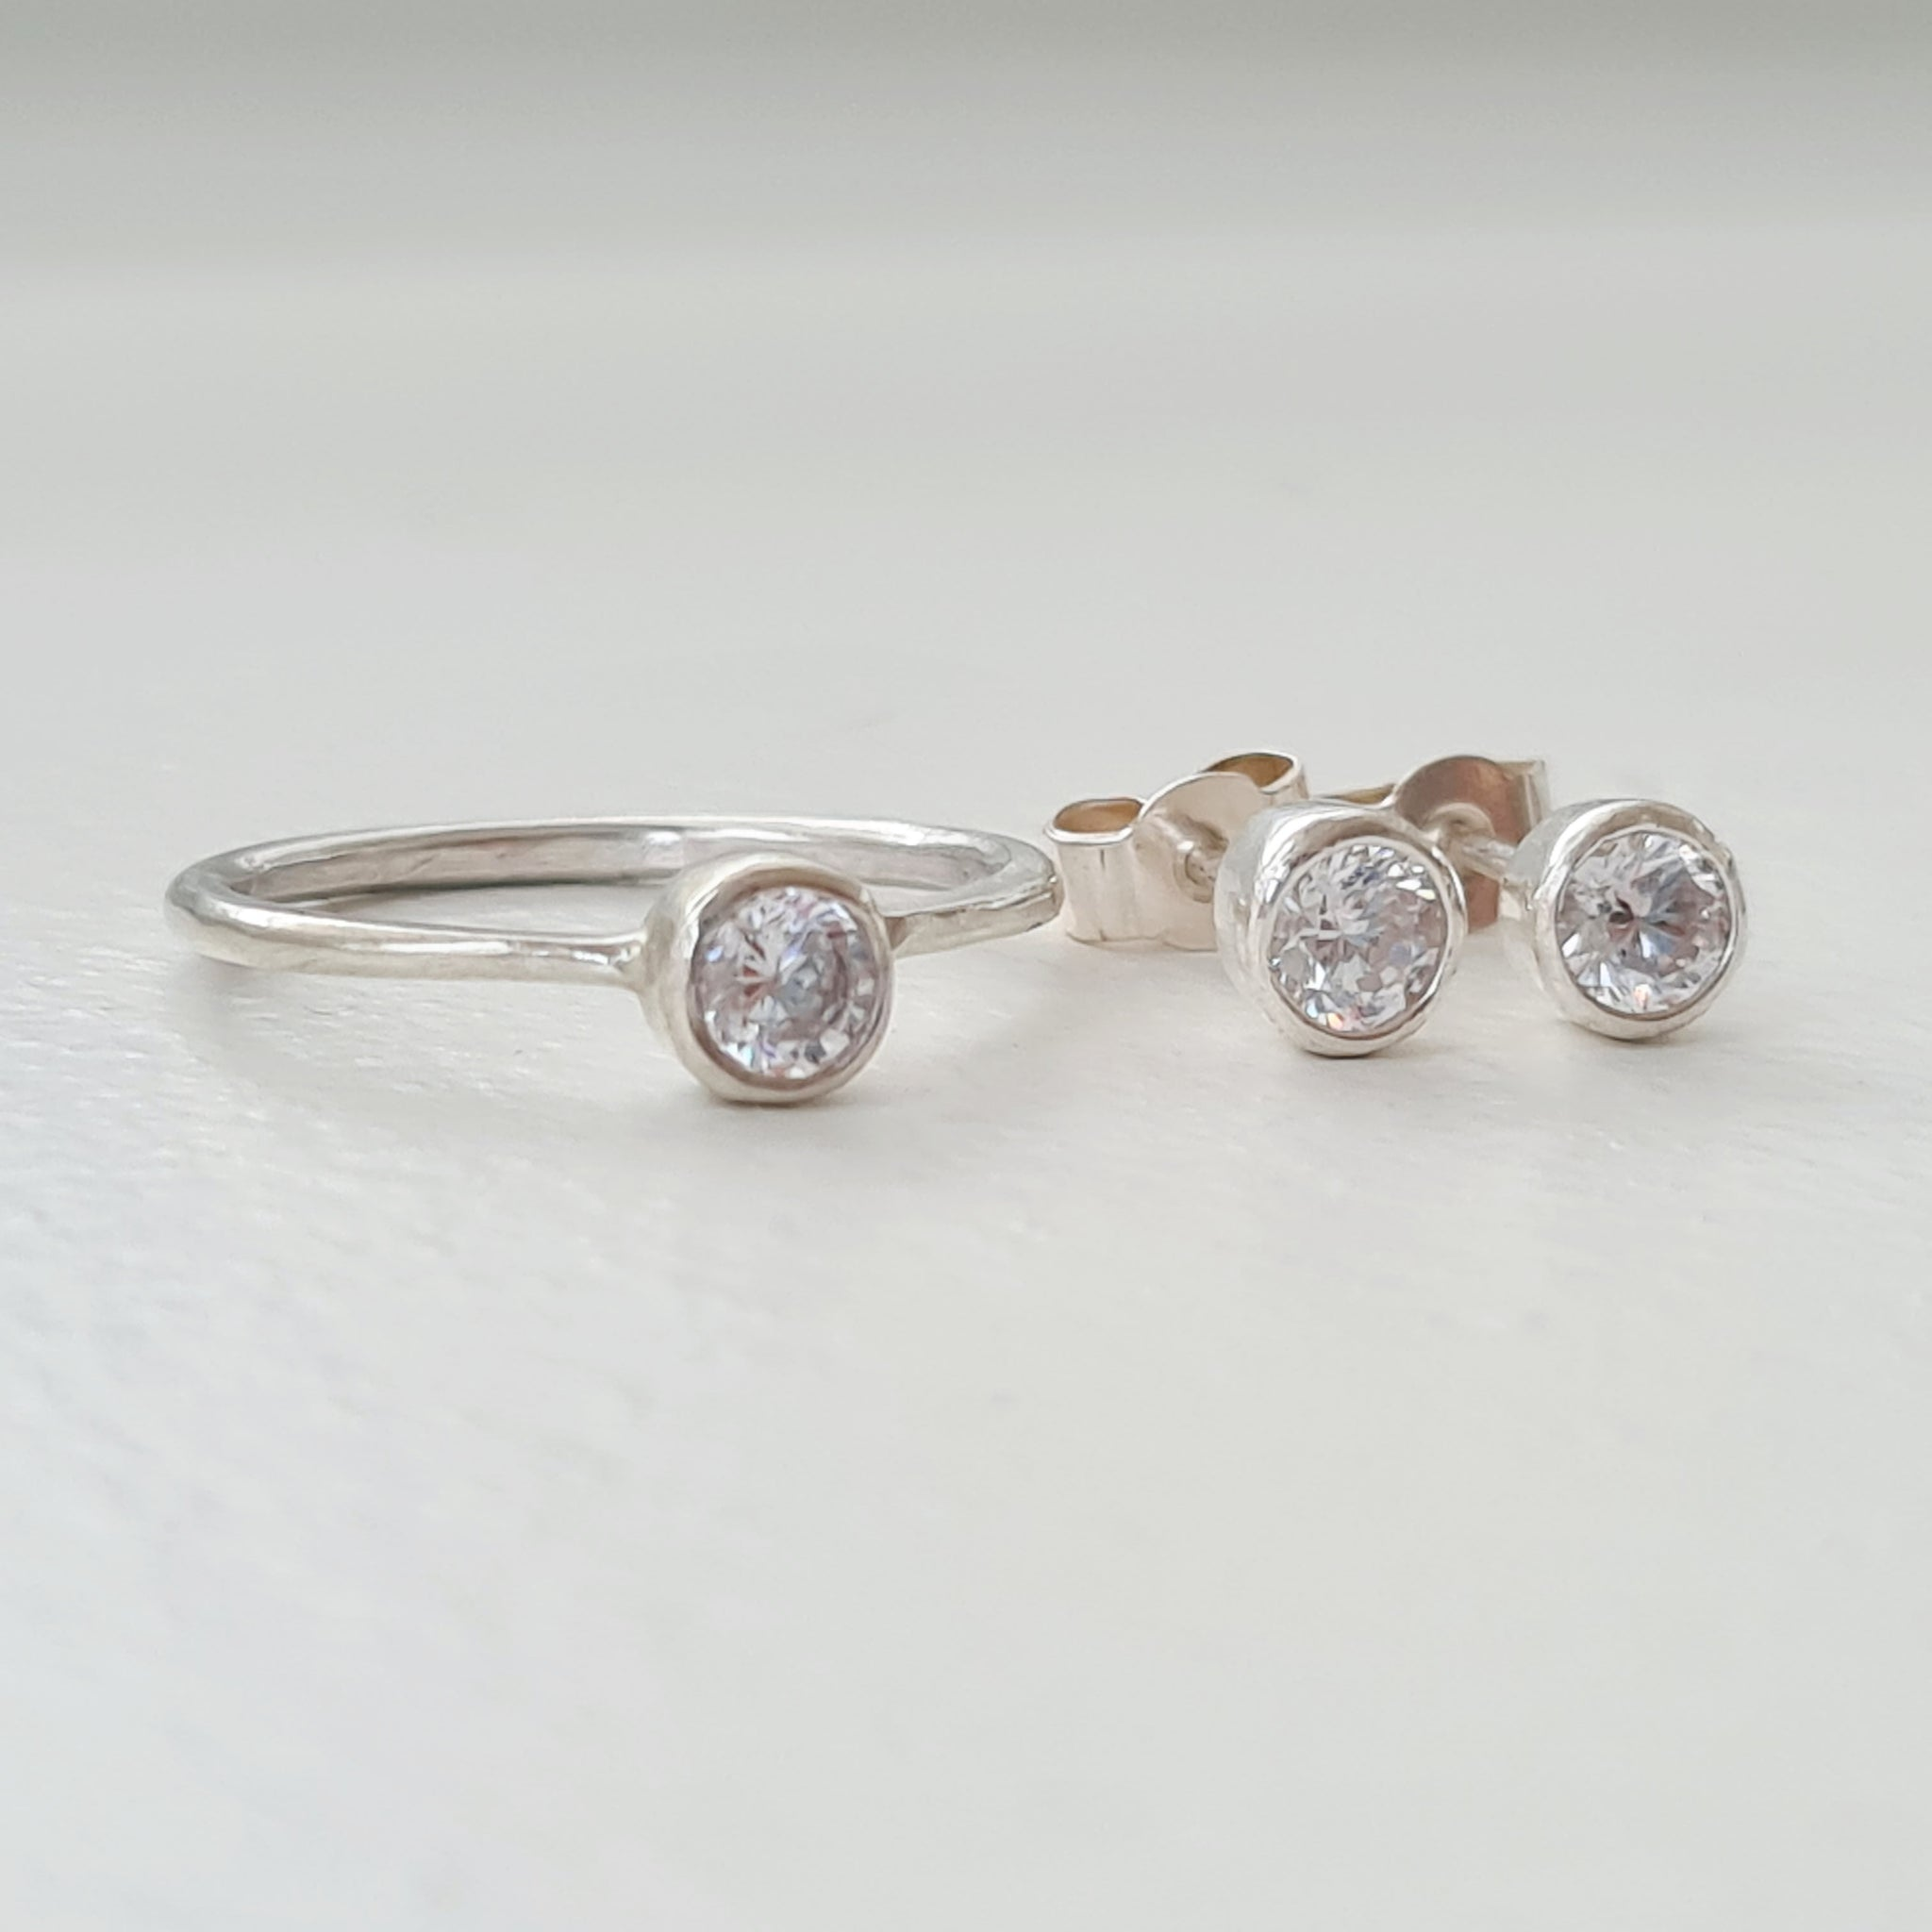 Earring and matching ring solitaire set